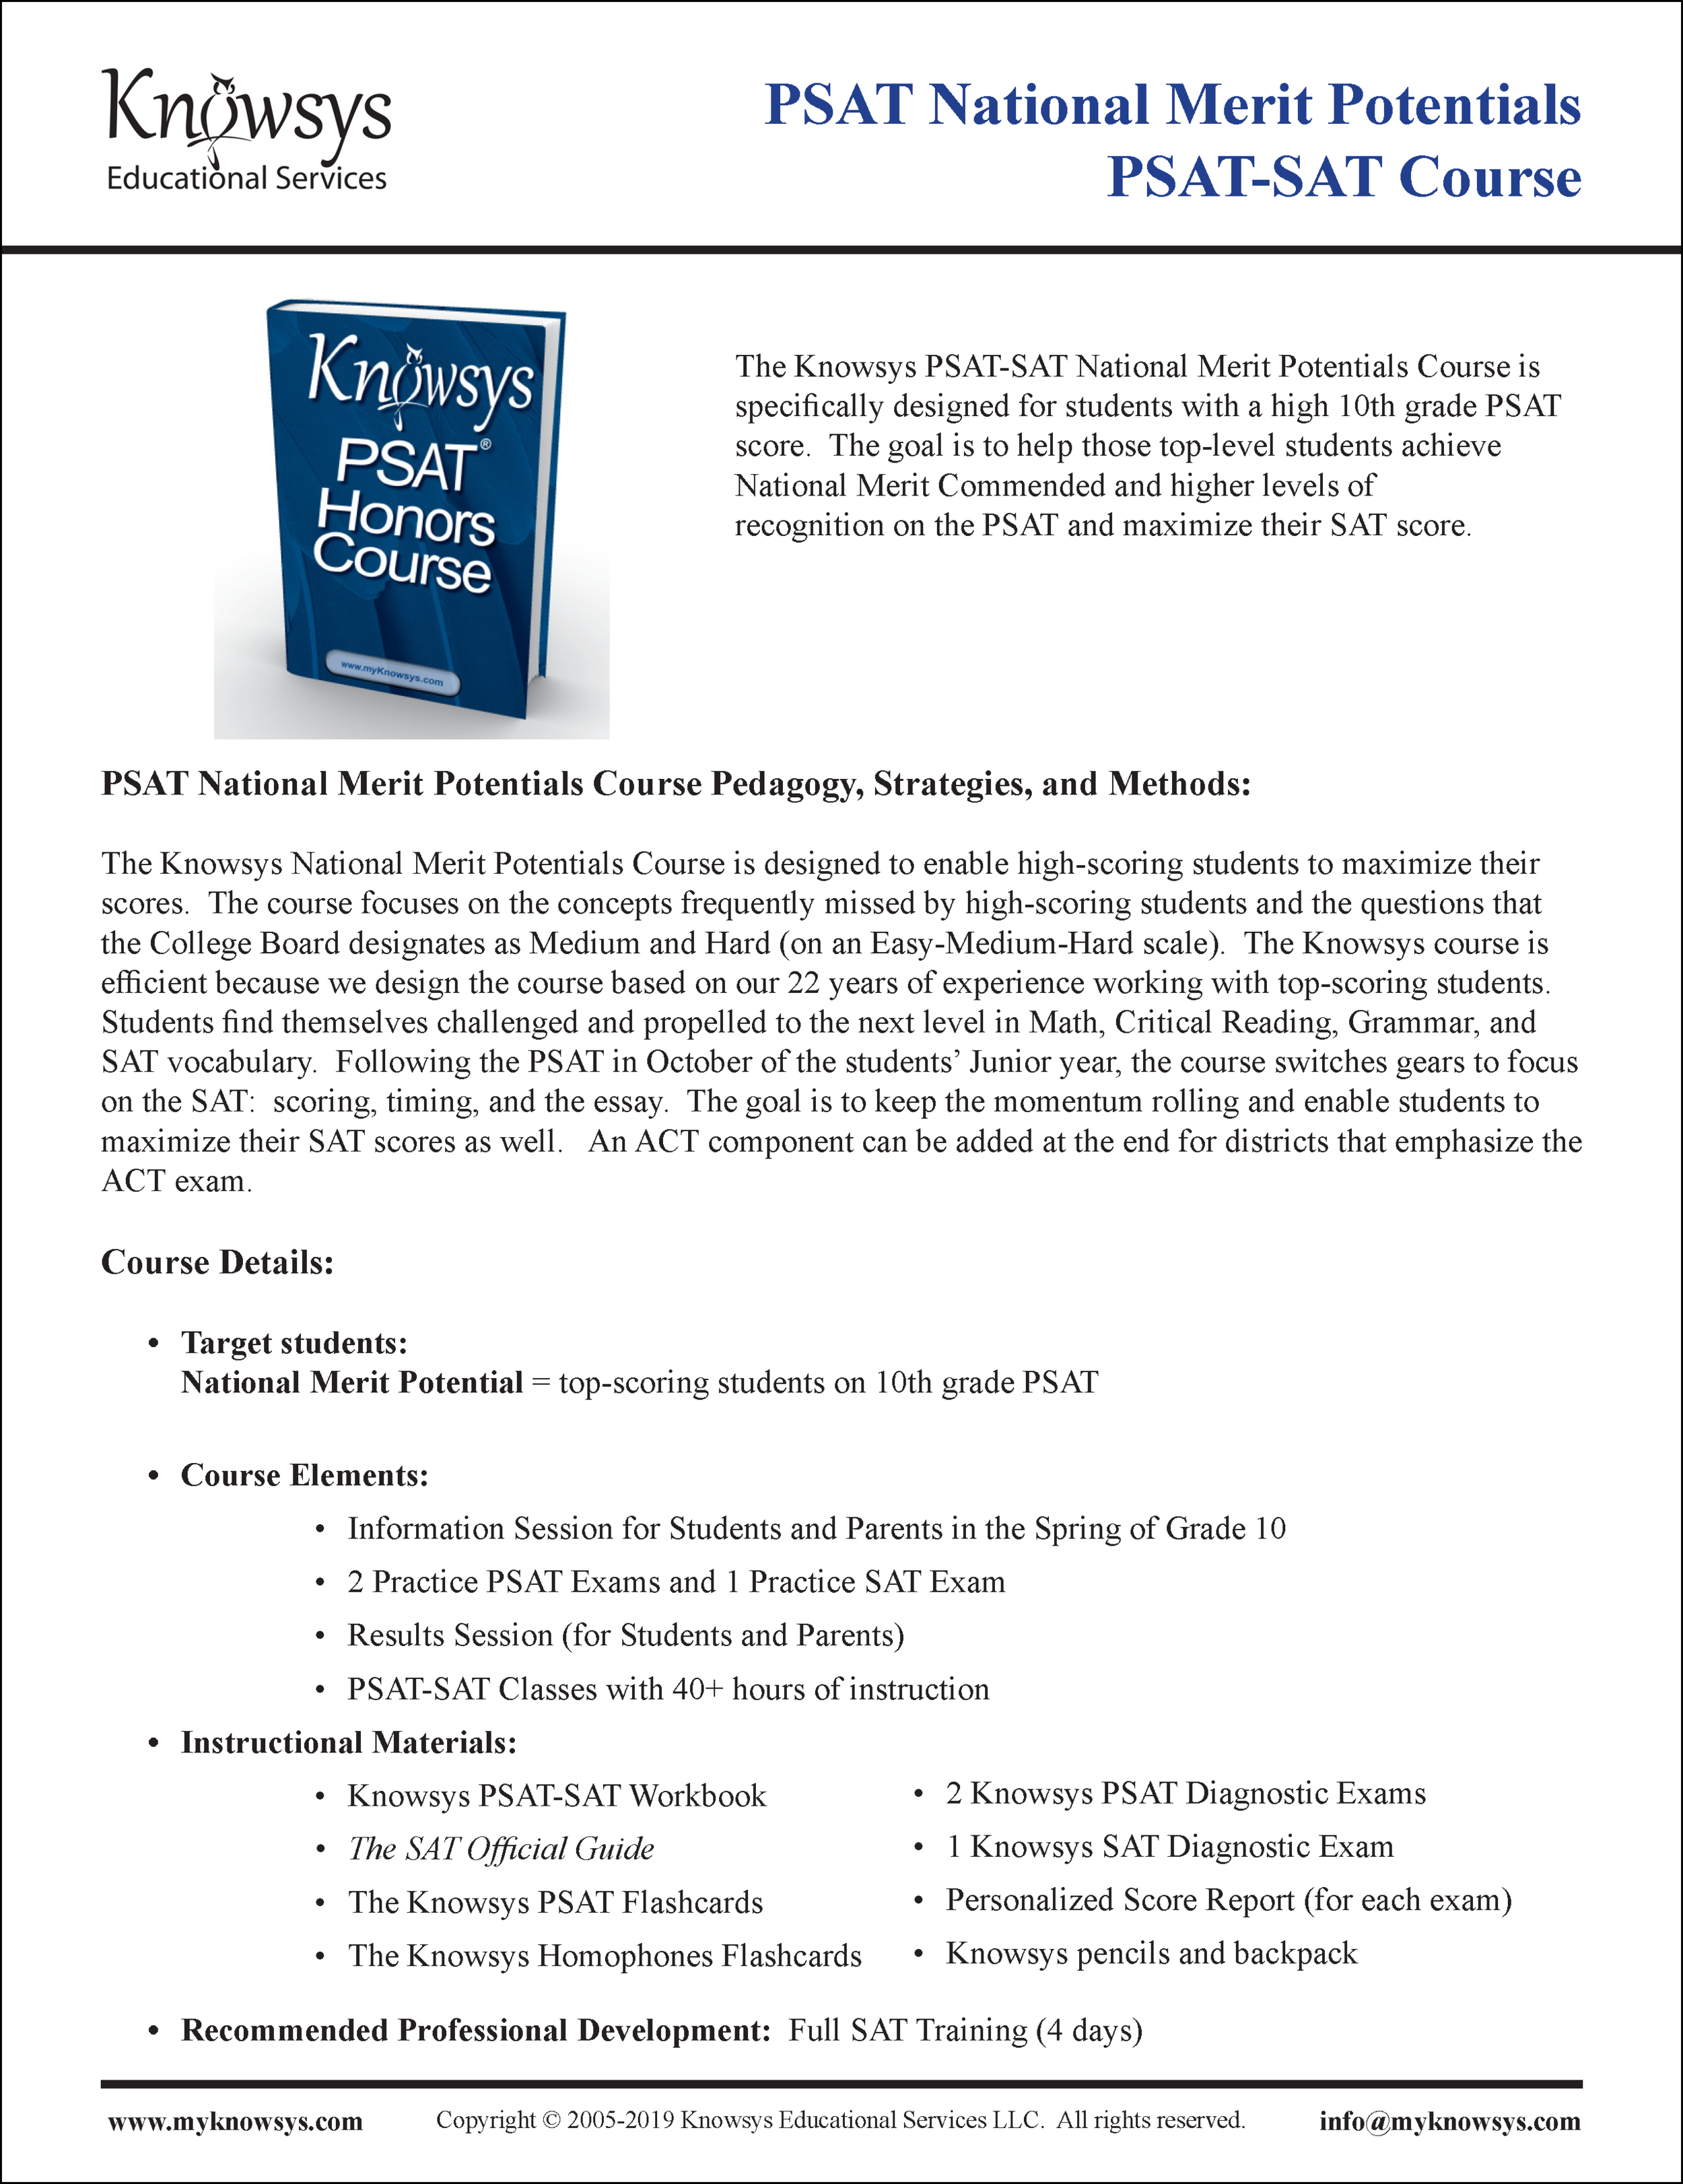 PSAT Curriculum Overview & Timeline